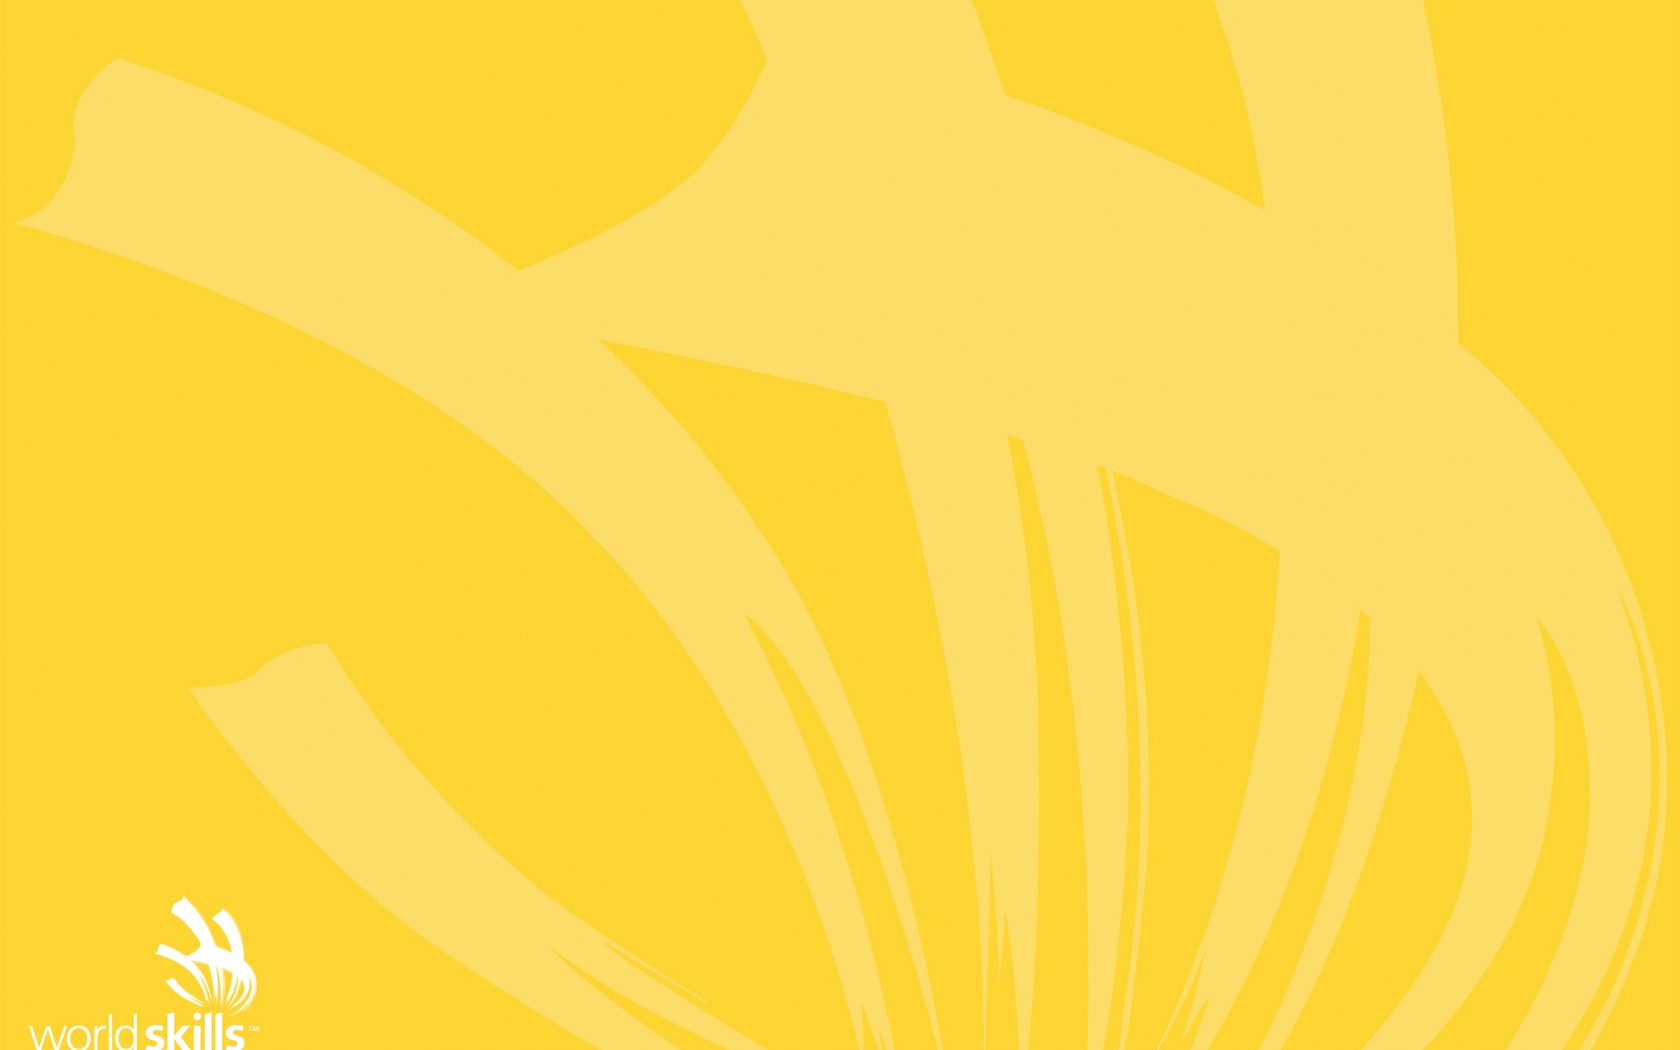 Free Download Yellow Wallpaper 1600 X 1200 2133x1600 For